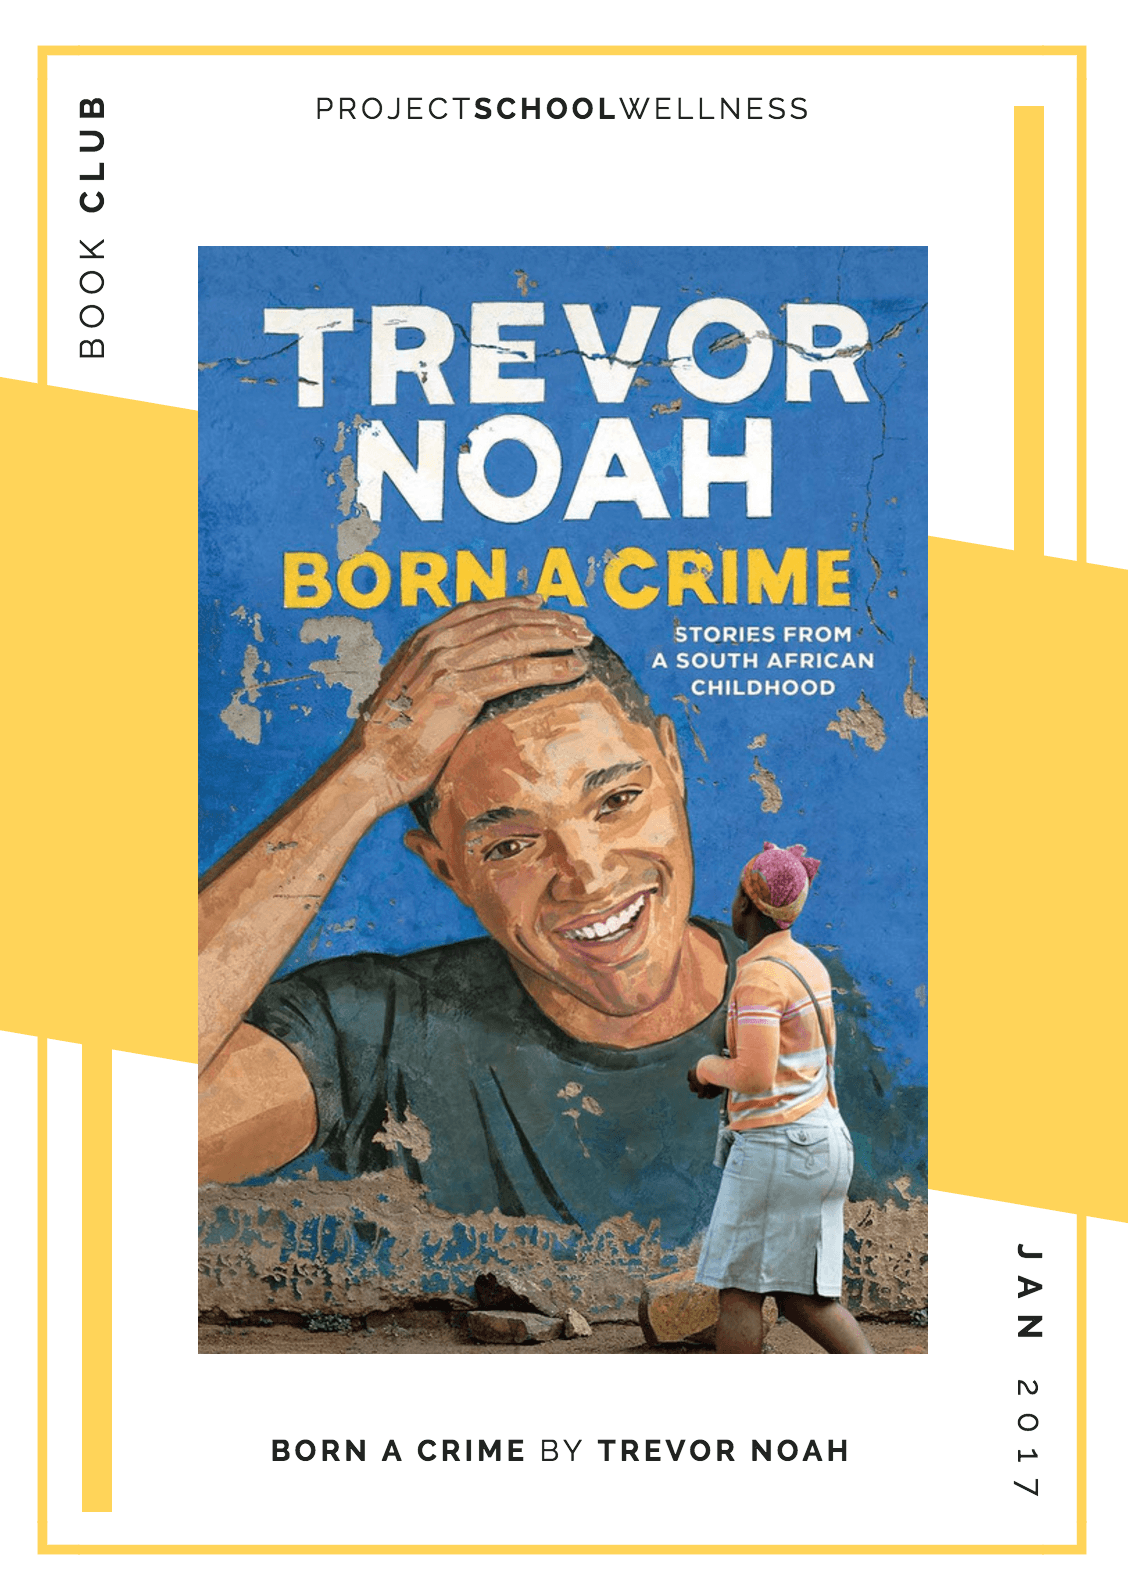 Trevor Noah, Born a Crime - Project School Wellness' Teacher Book Club, must read books for every teacher!